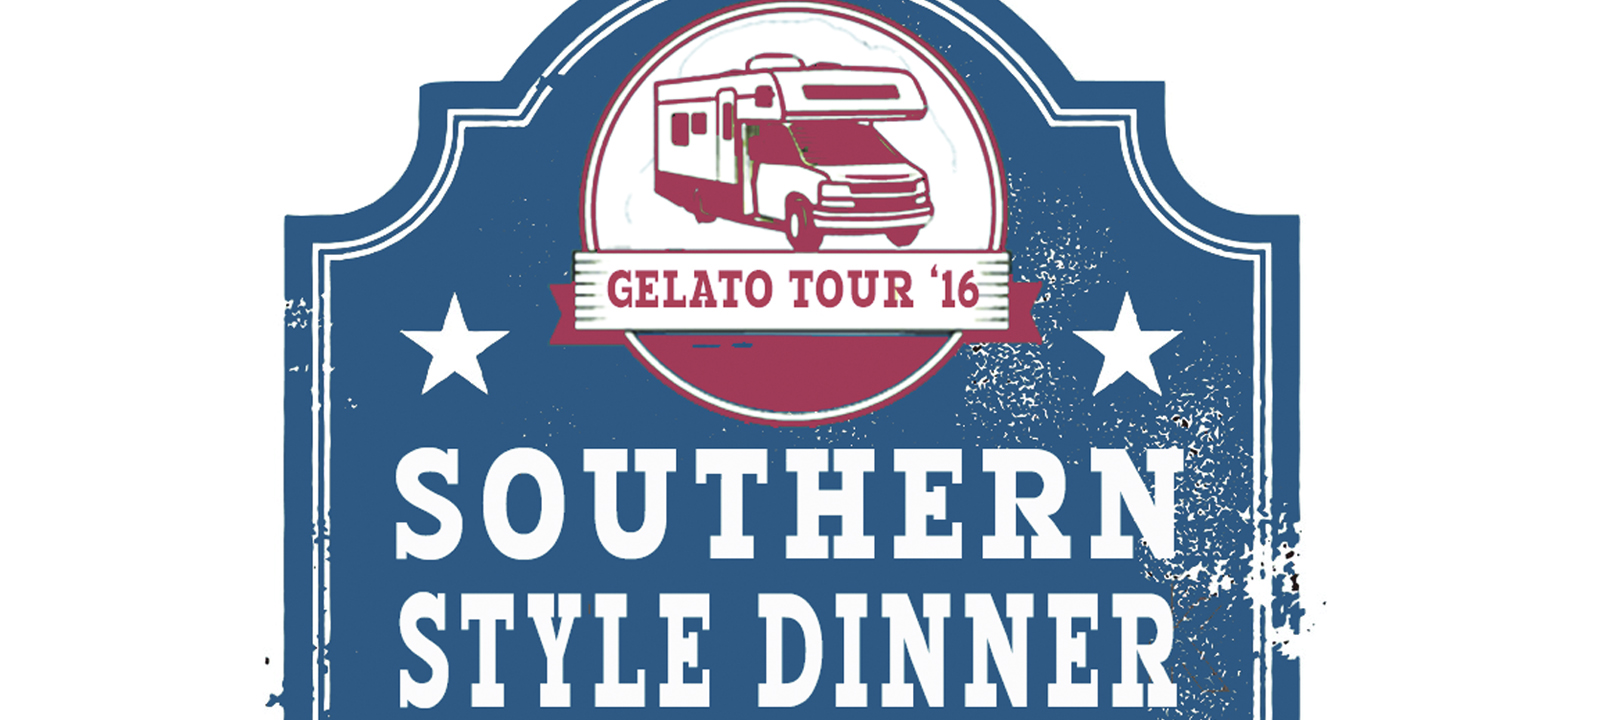 Join us for our Southern-Style Dinner!